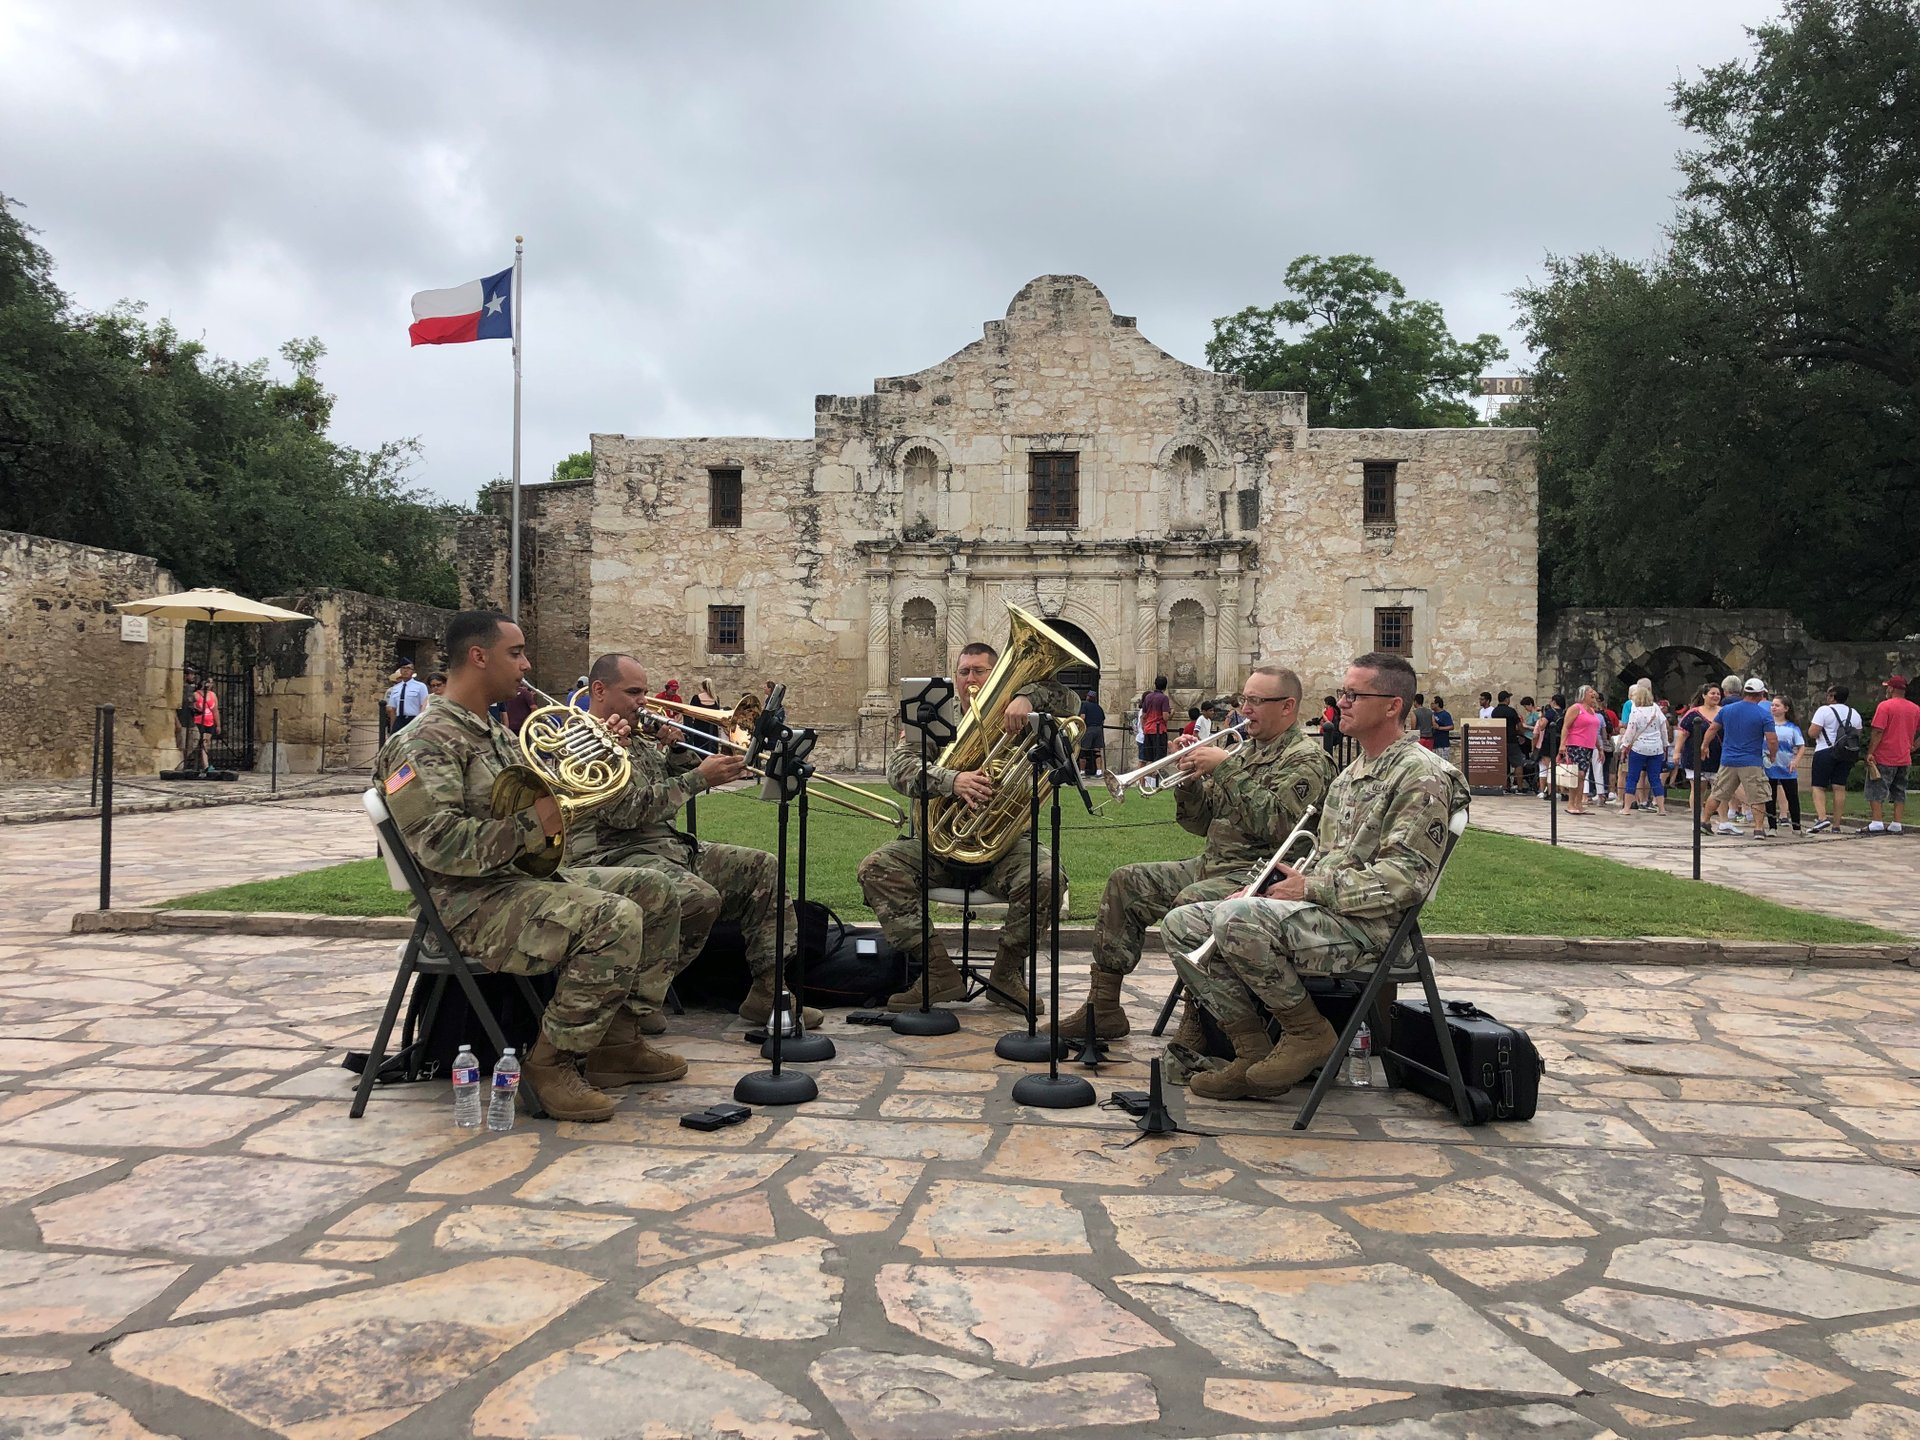 The Alamo 4th of July 2020